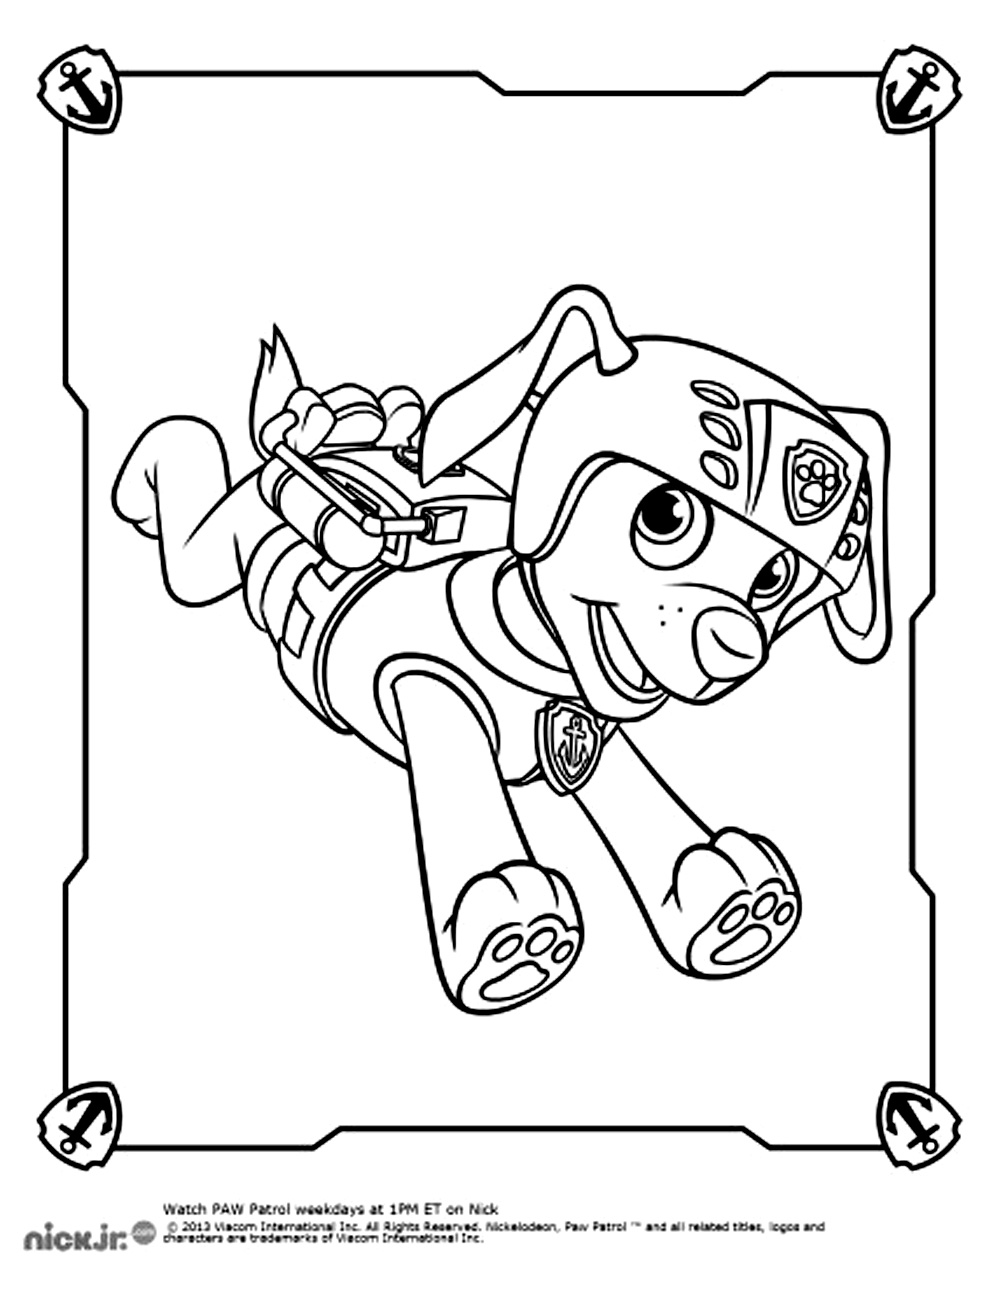 Paw patrol for kids - Paw Patrol Kids Coloring Pages